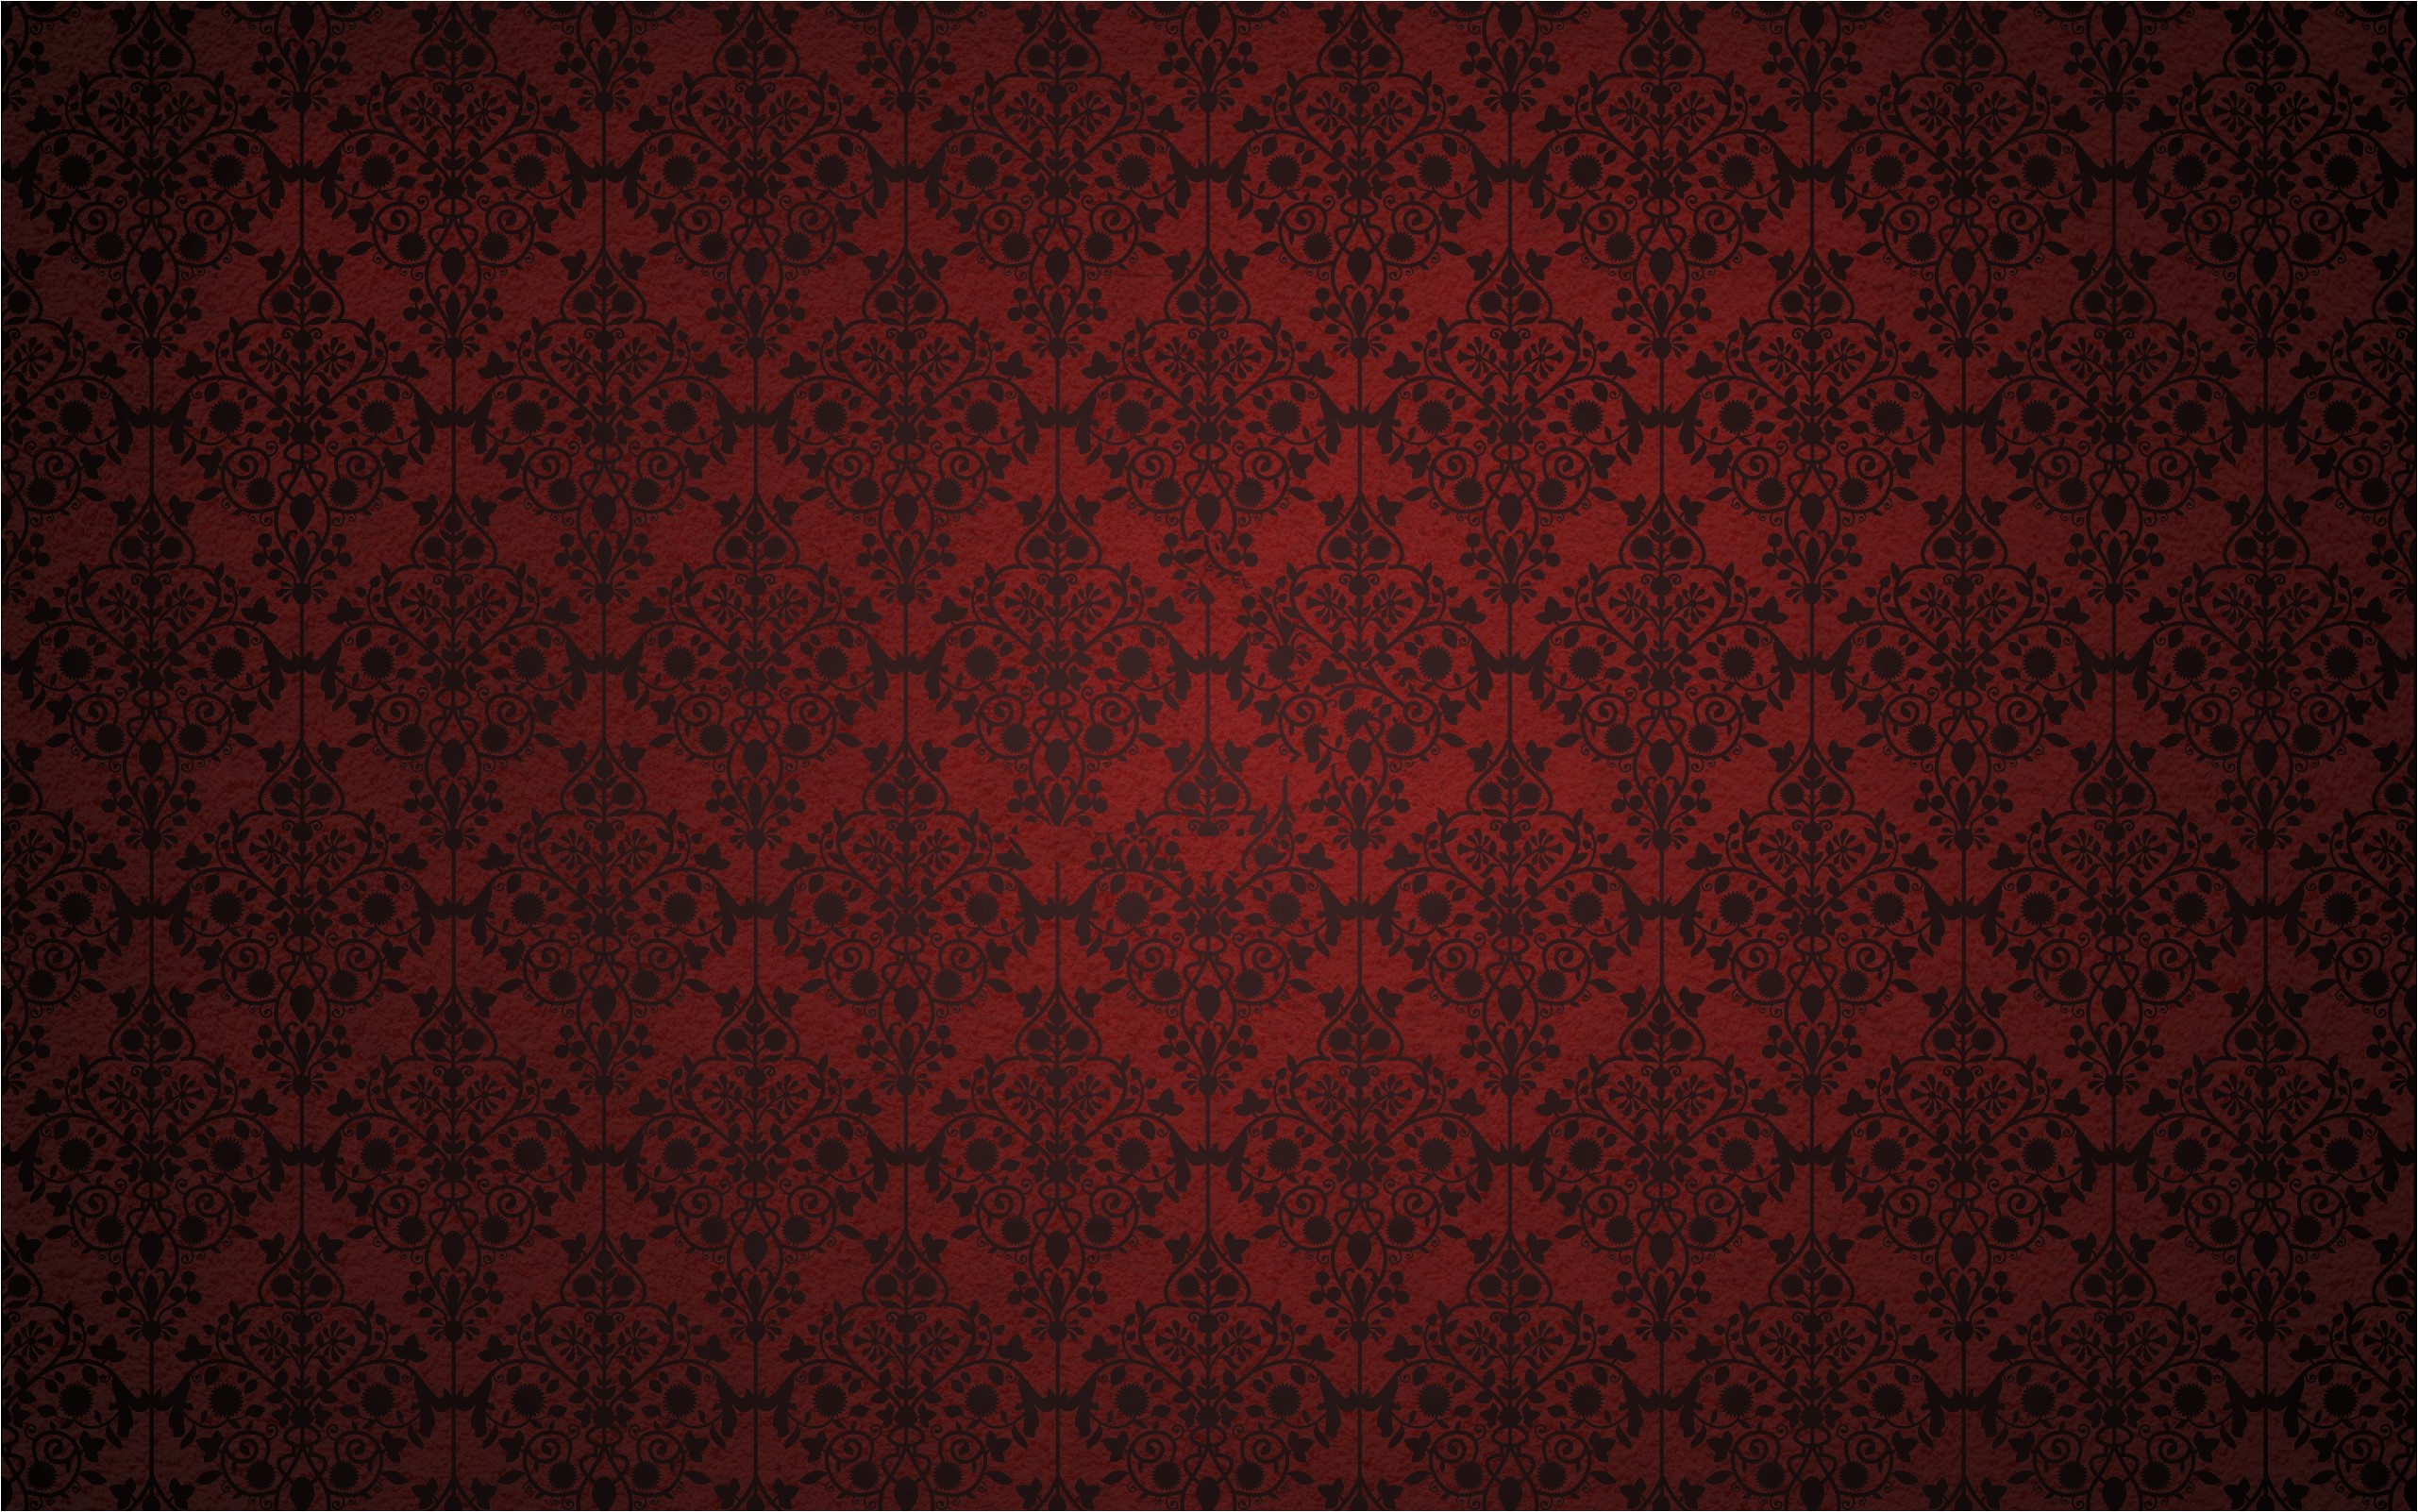 abstract patterns damask HD Wallpaper